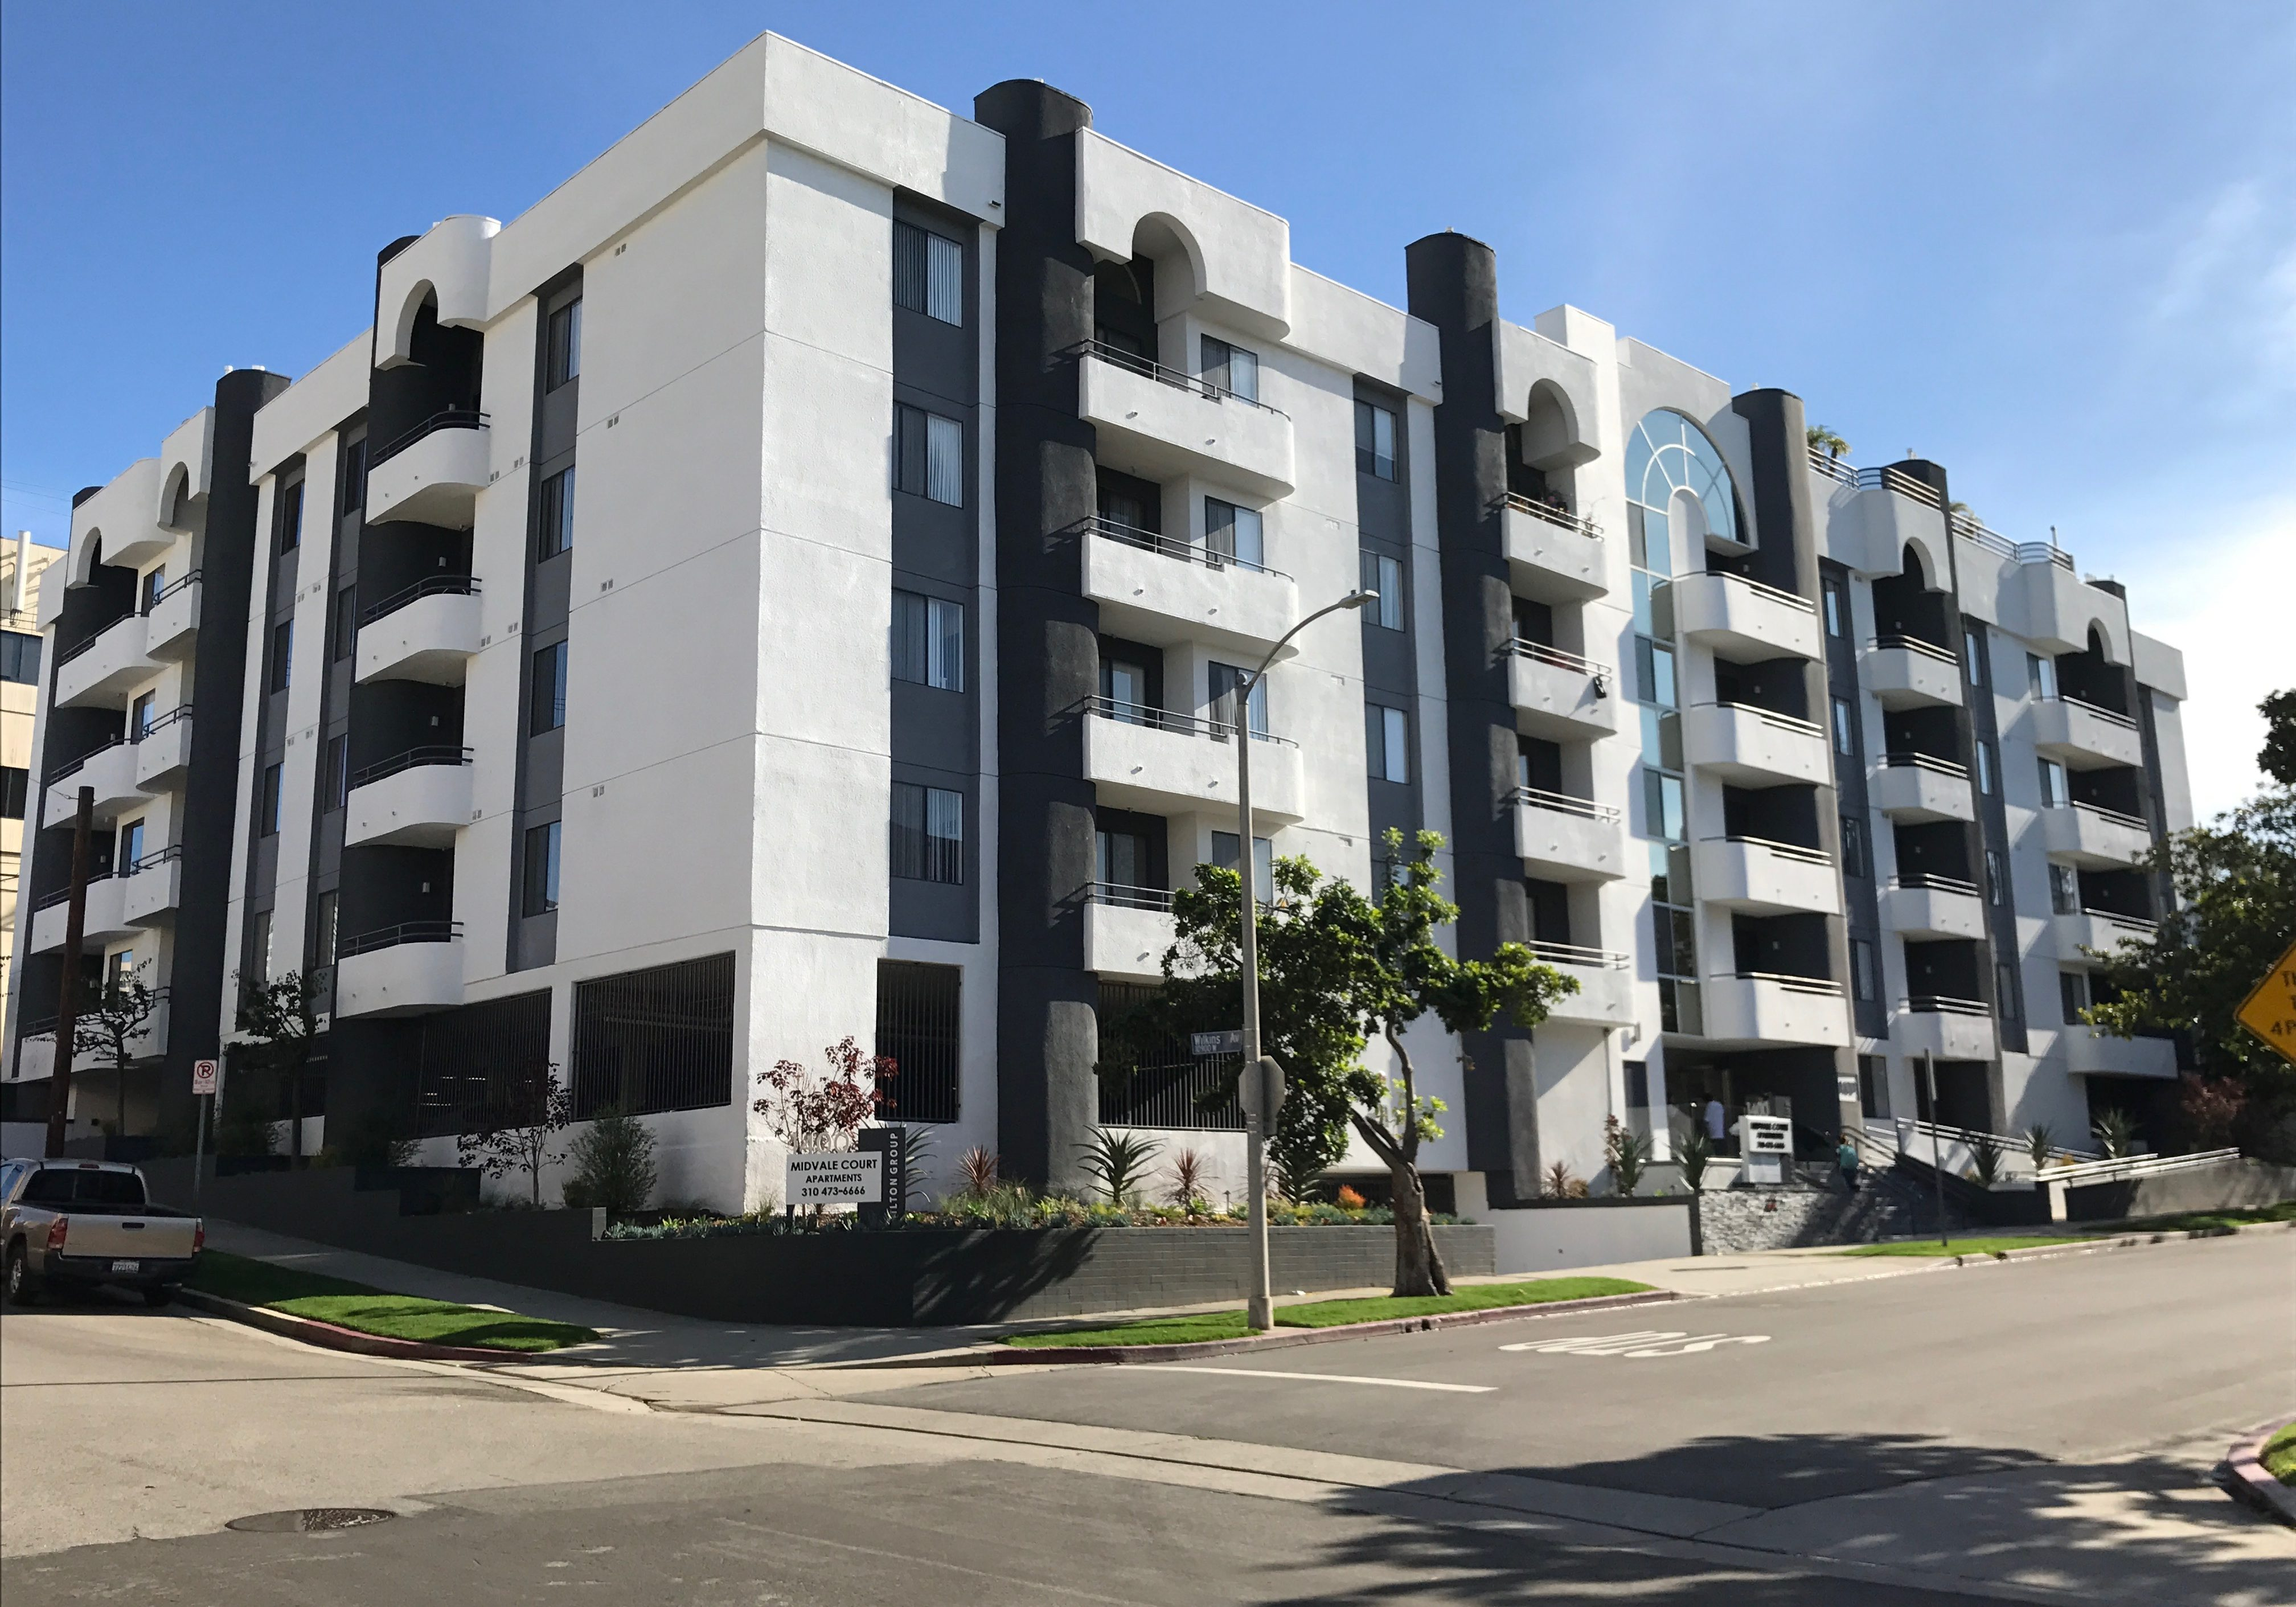 Midvale Court Apartment Building showcasing White paint color and Grey accent color